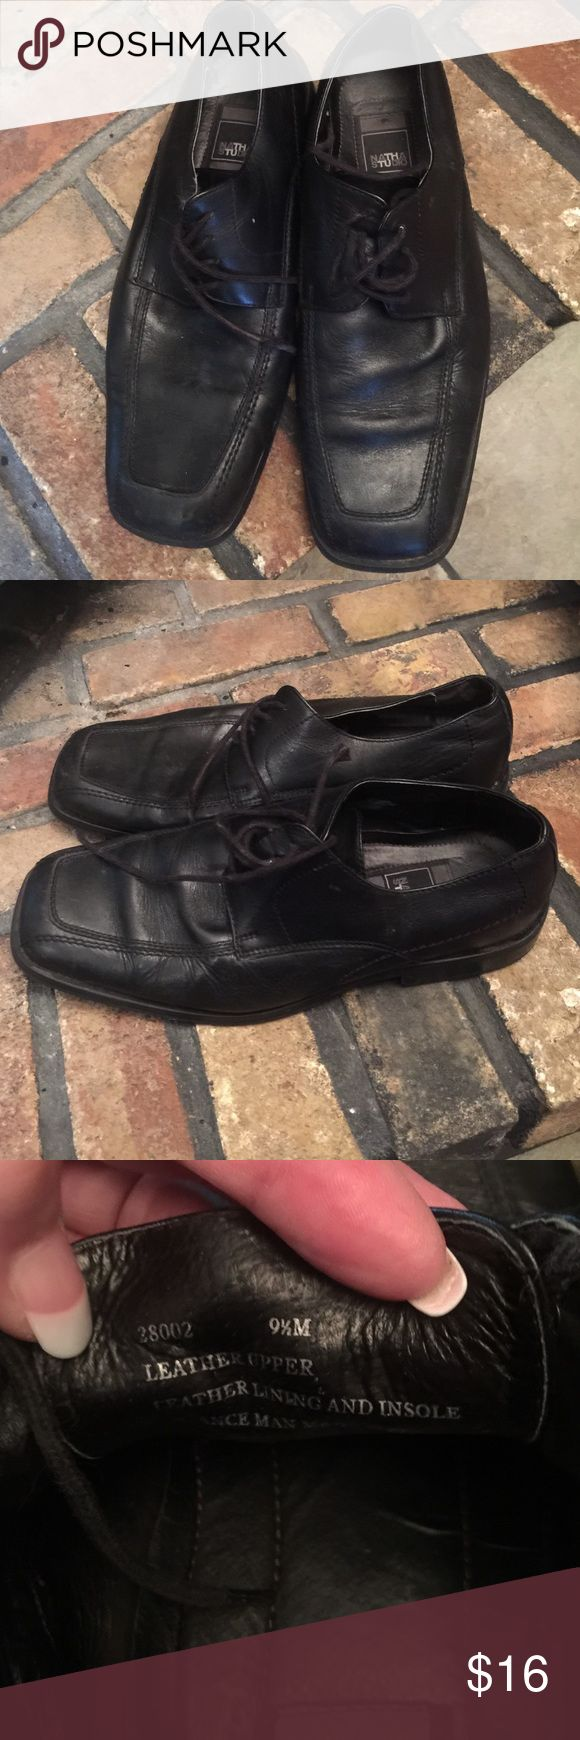 👞 Natha Studio Men's Leather Shoes Nice pair of men's lace up shoes. Could use a new set of shoestrings but other wise in great condition. 🚭 home. Natha Studio Shoes Oxfords & Derbys